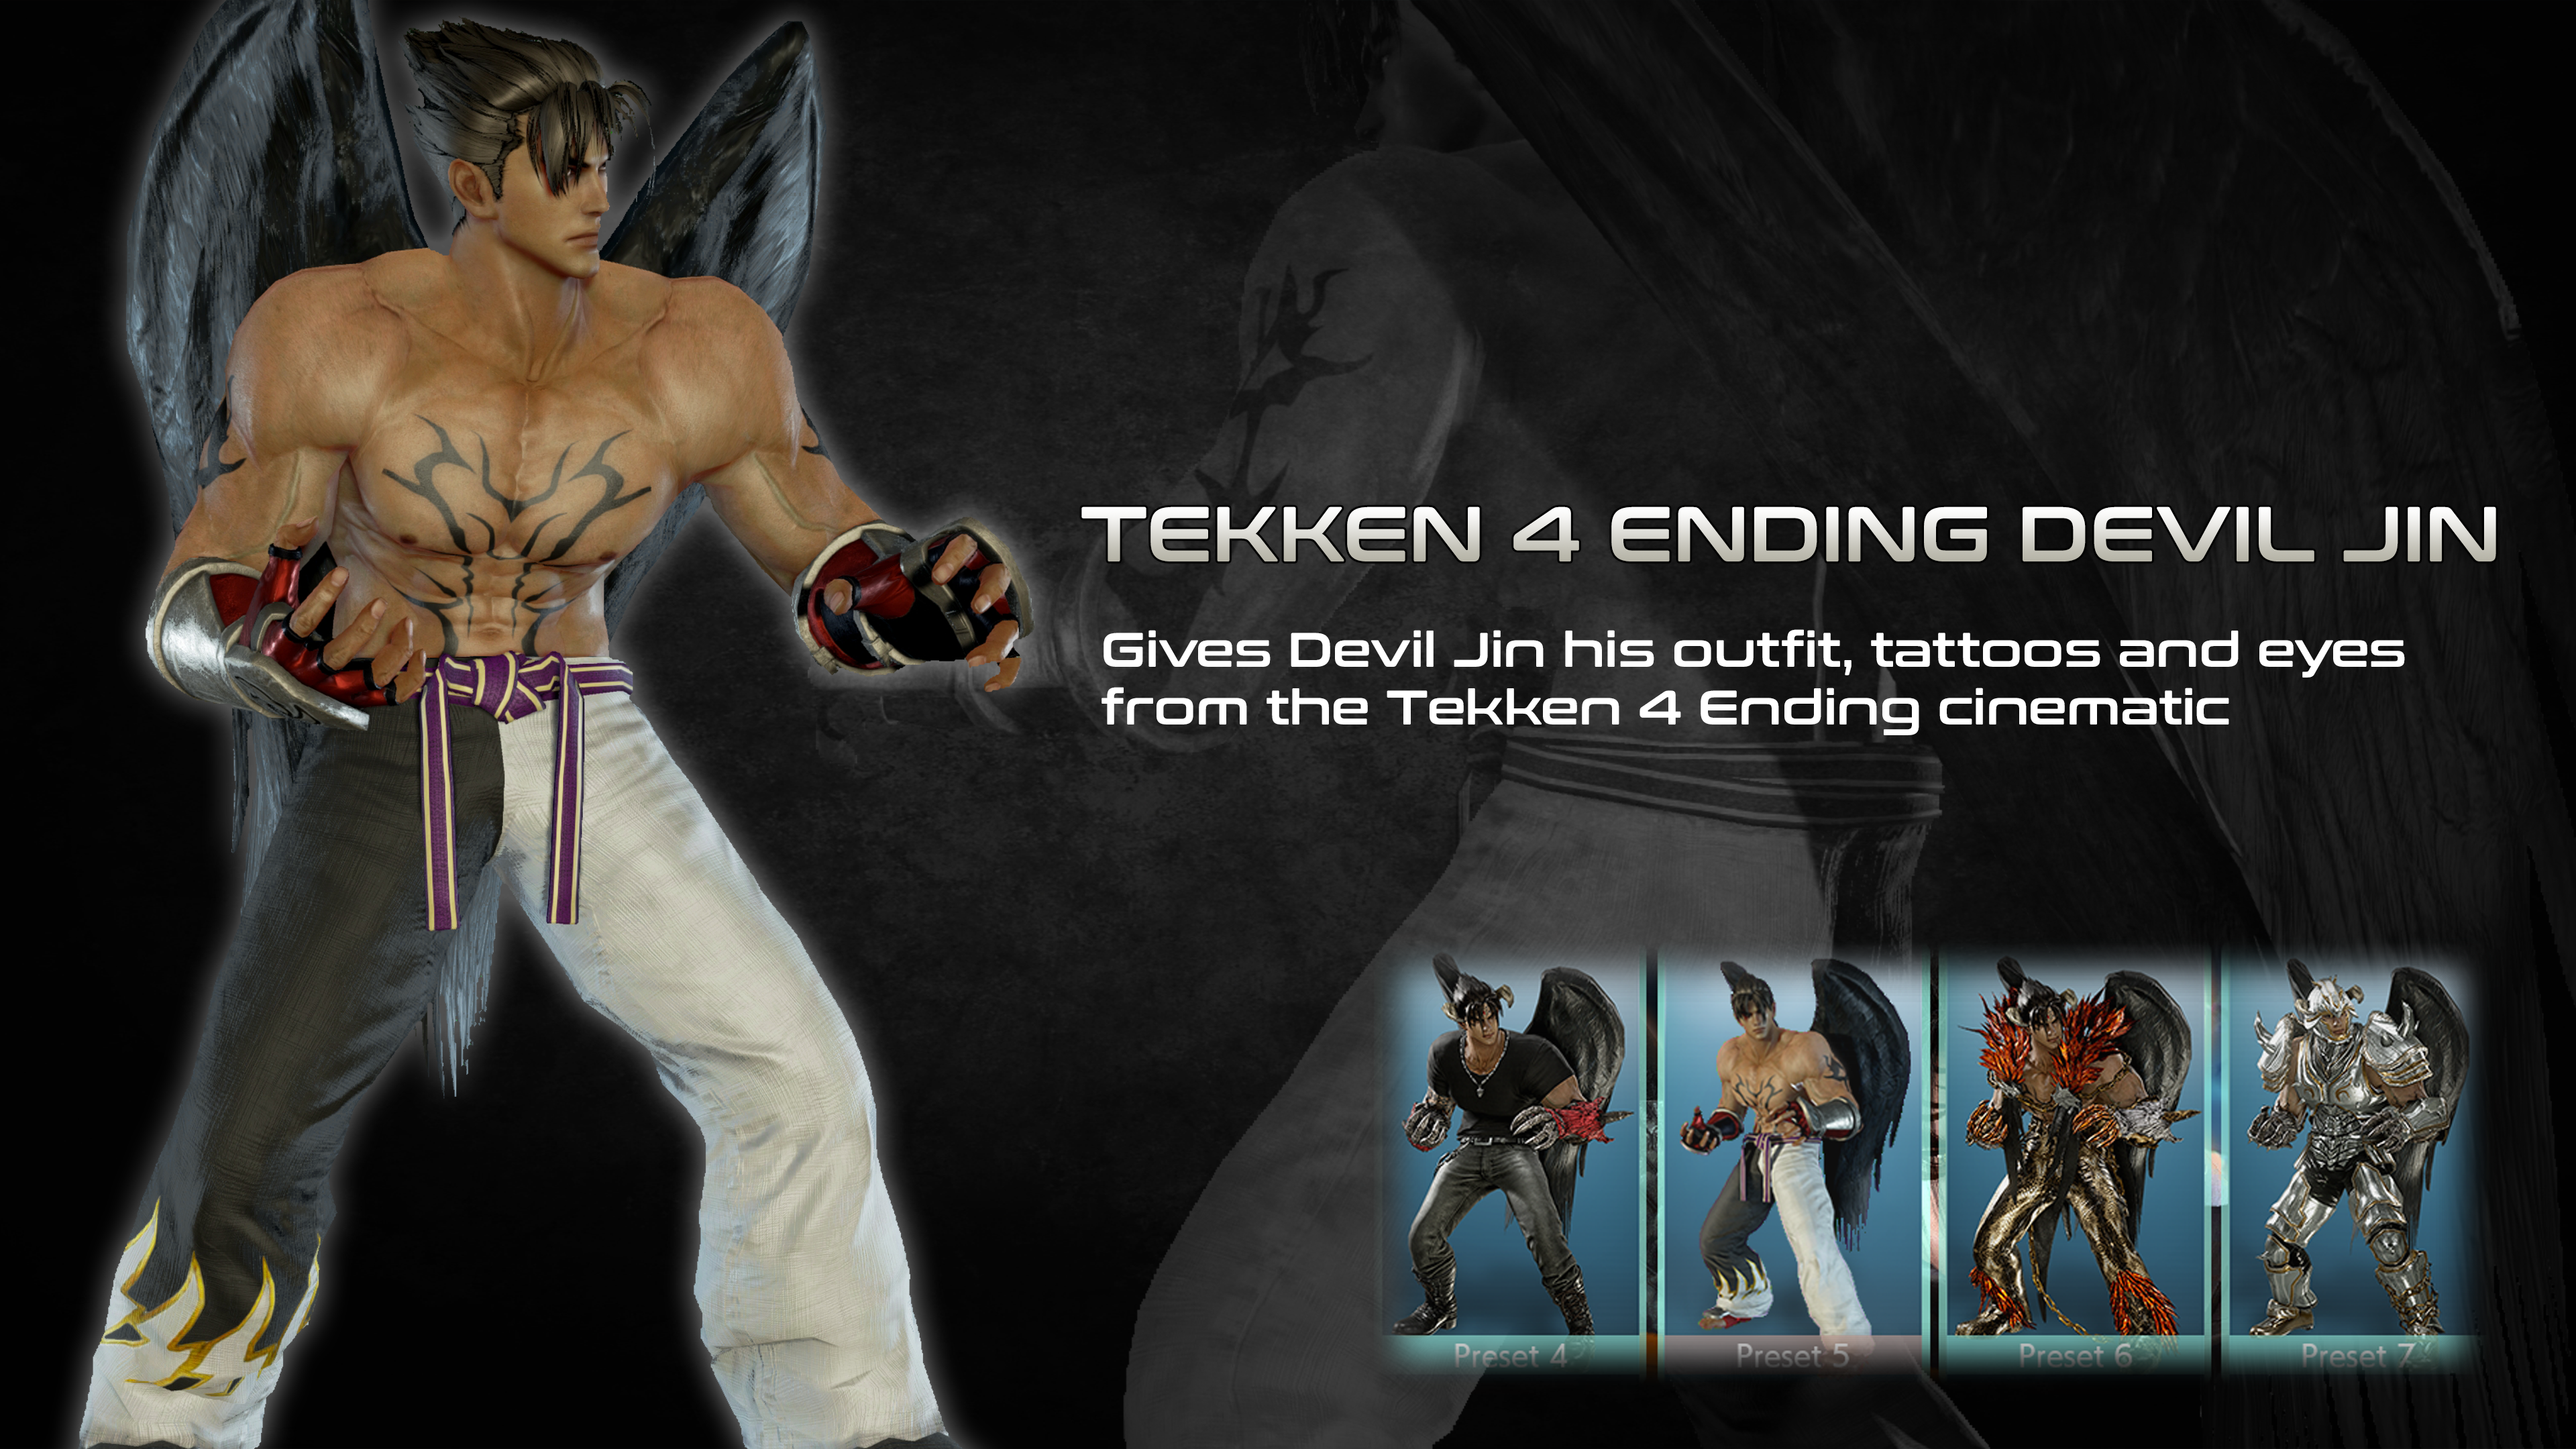 Tekken 4 Ending Cinematic Devil Jin By Thei3arracuda On Deviantart